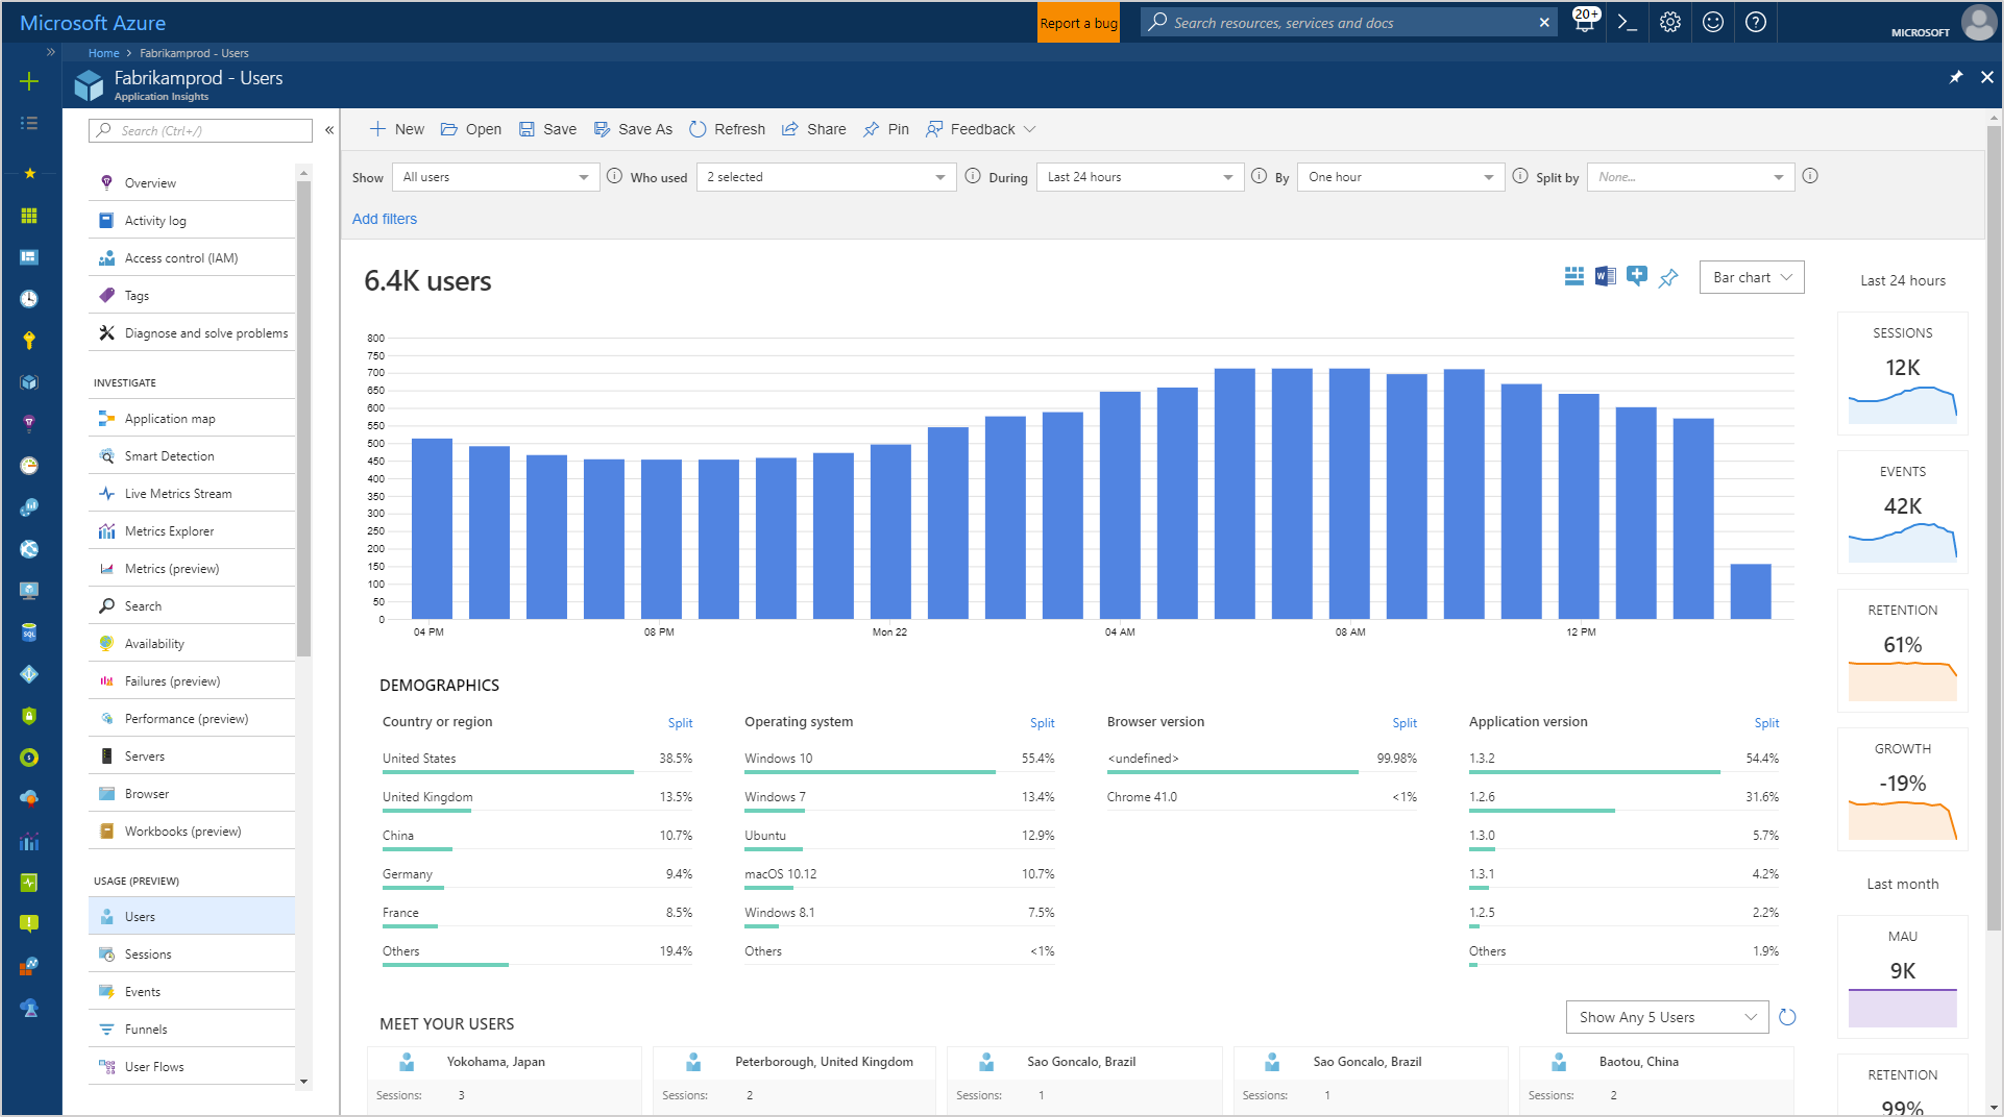 User, session, and event analysis in Azure Application Insights